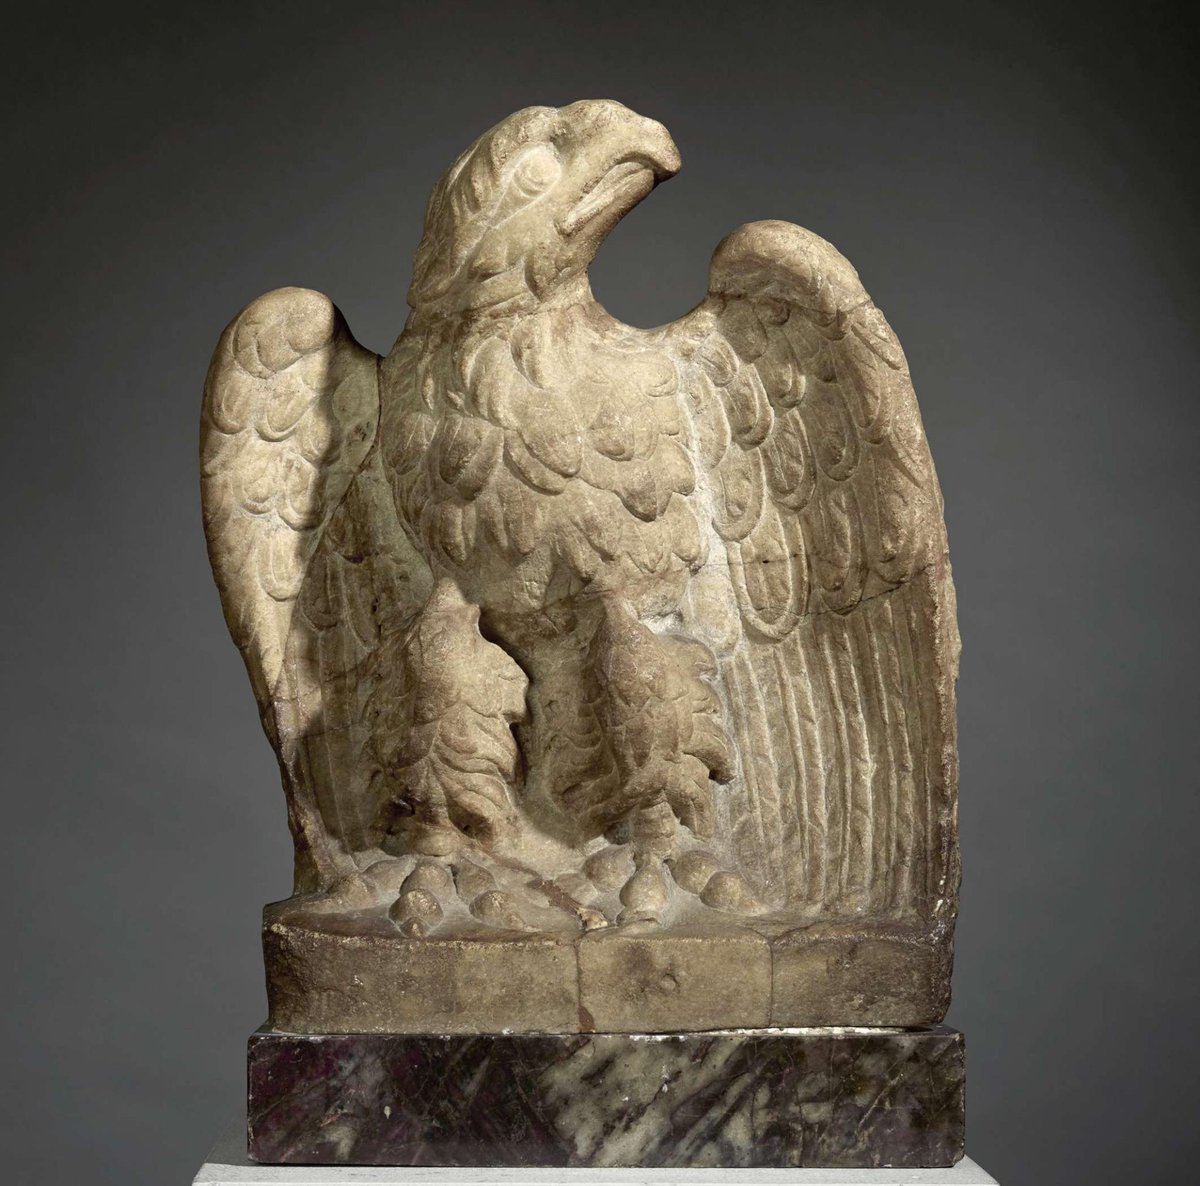 Tefaf On Twitter The Eagle Was The Most Noble Bird Of Antiquity